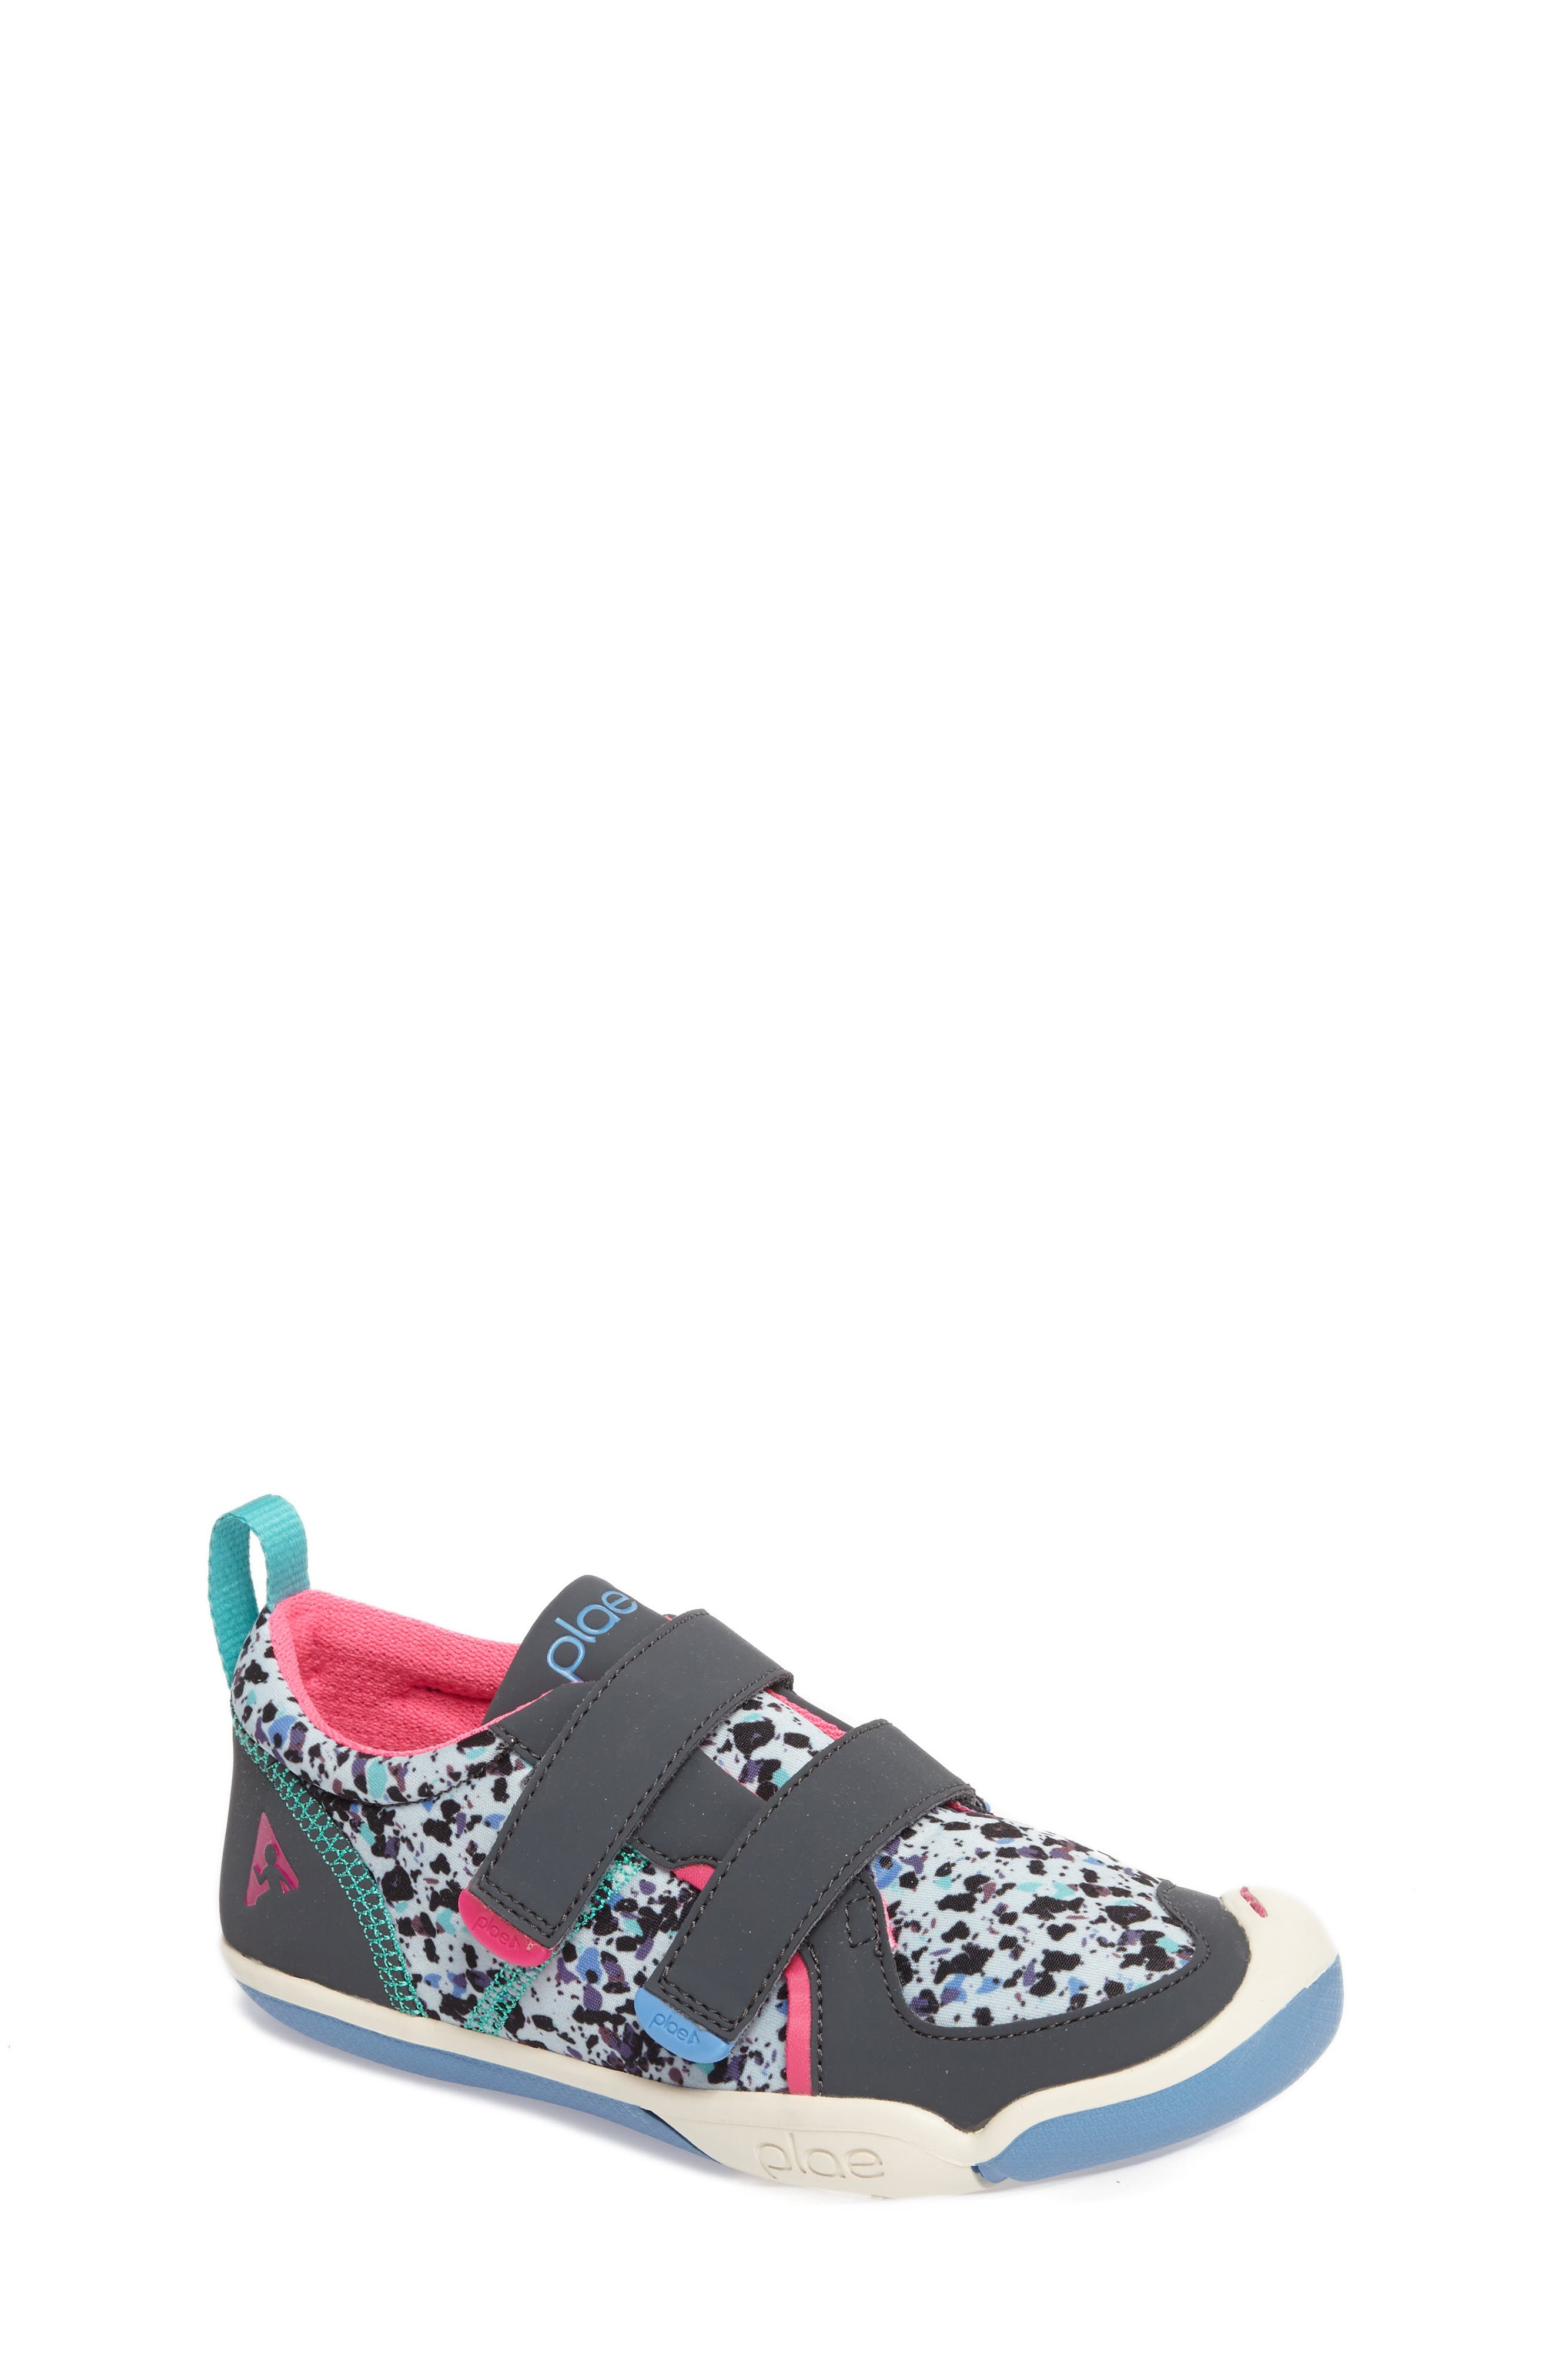 PLAE Shoes for Kids Nordstrom